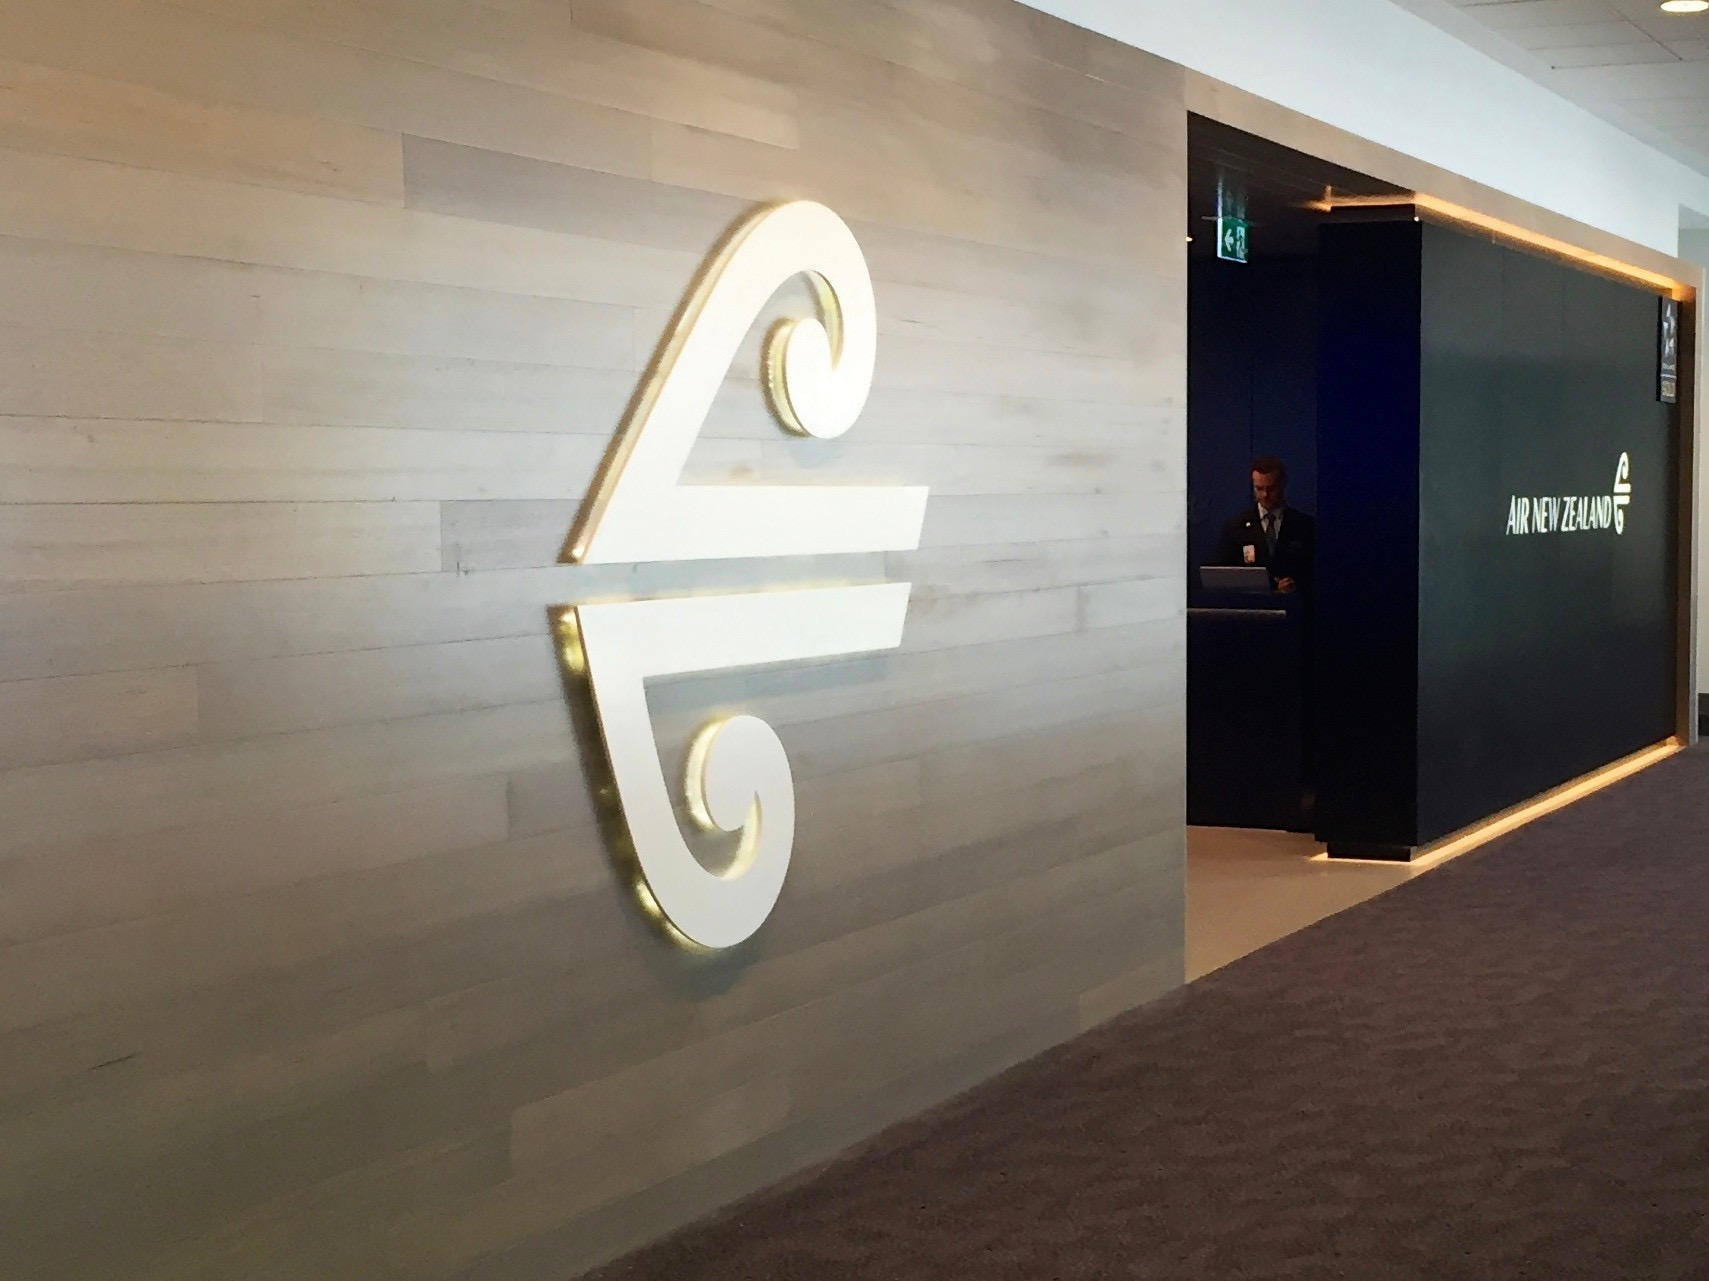 sydney-air-nz-lounge